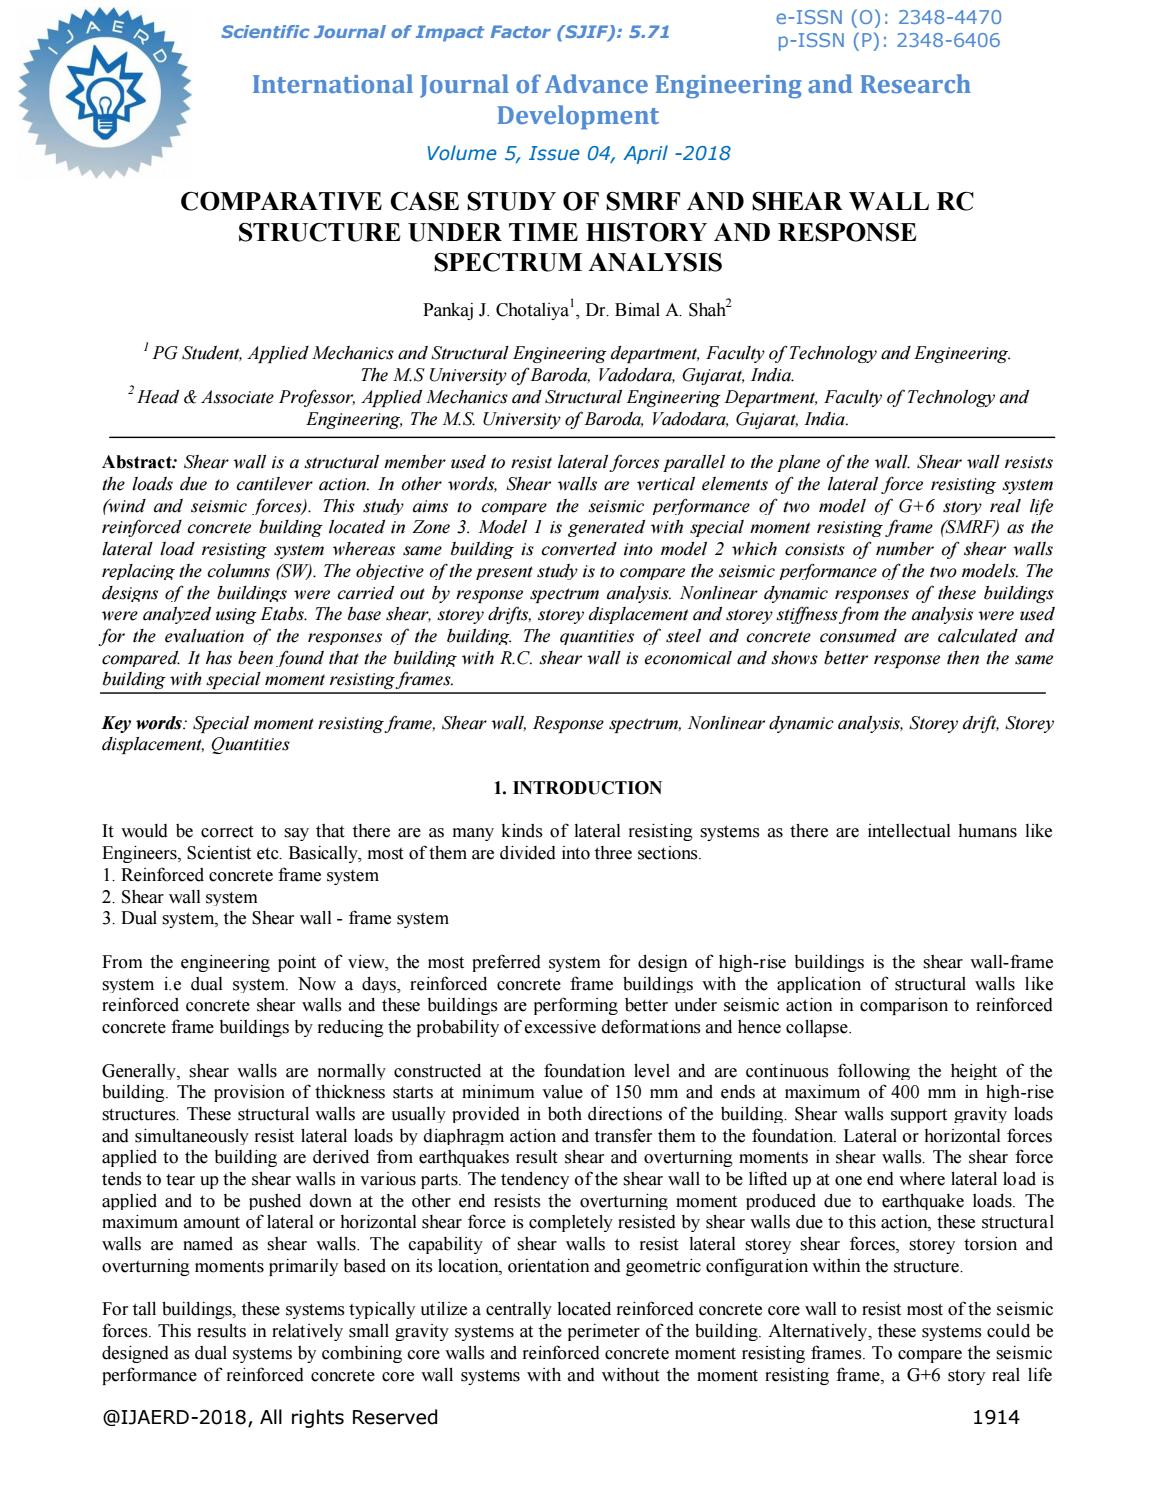 COMPARATIVE CASE STUDY OF SMRF AND SHEAR WALL RC STRUCTURE UNDER